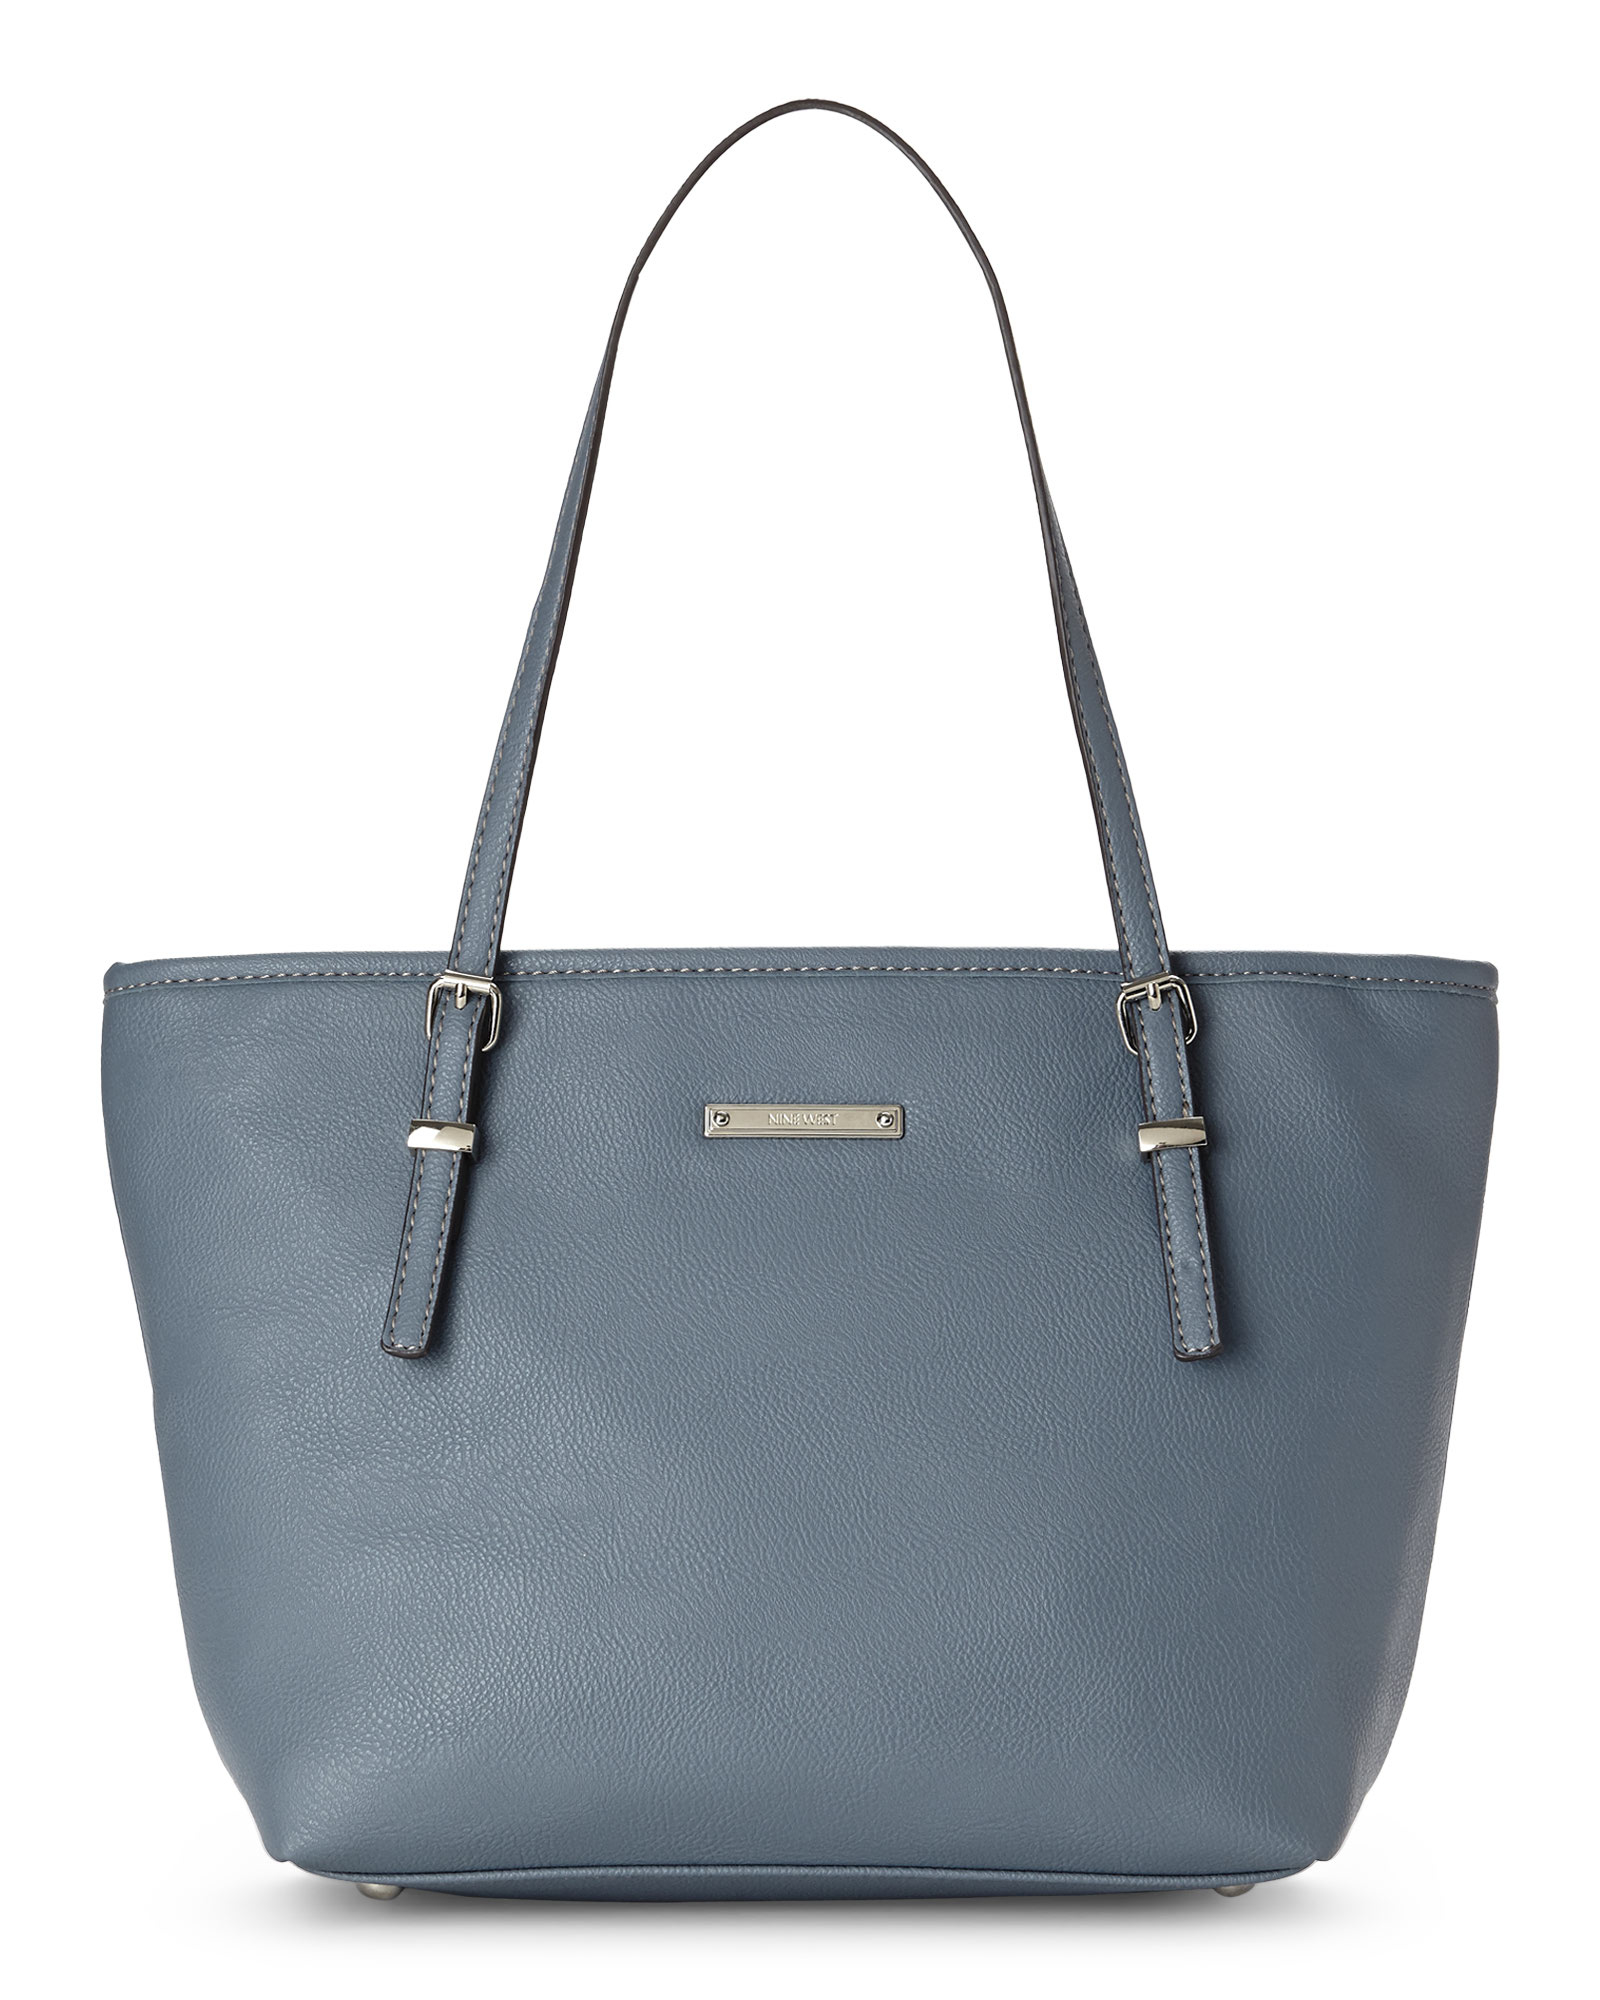 Glacial Blue It Small Tote